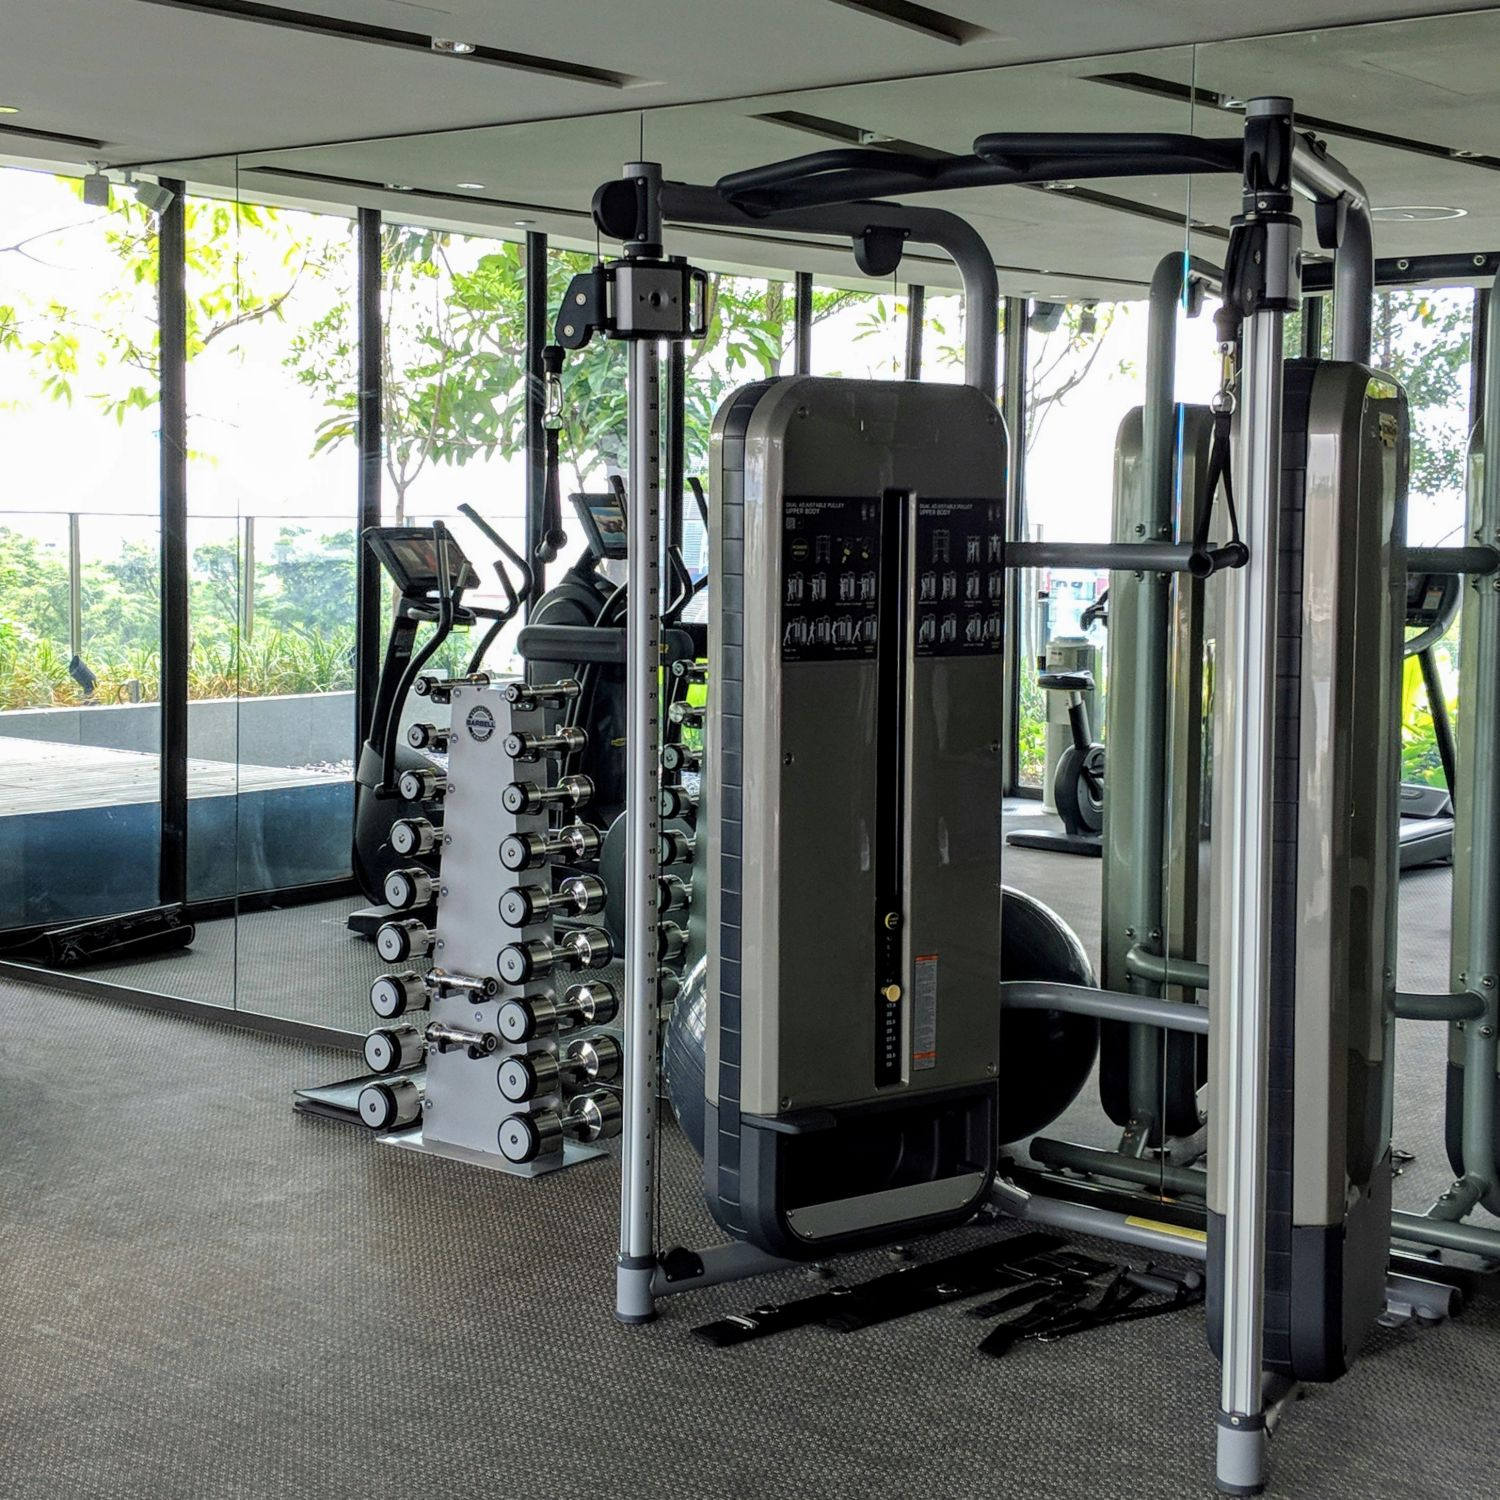 oakwood premier oue singapore the fitness center by oakwood